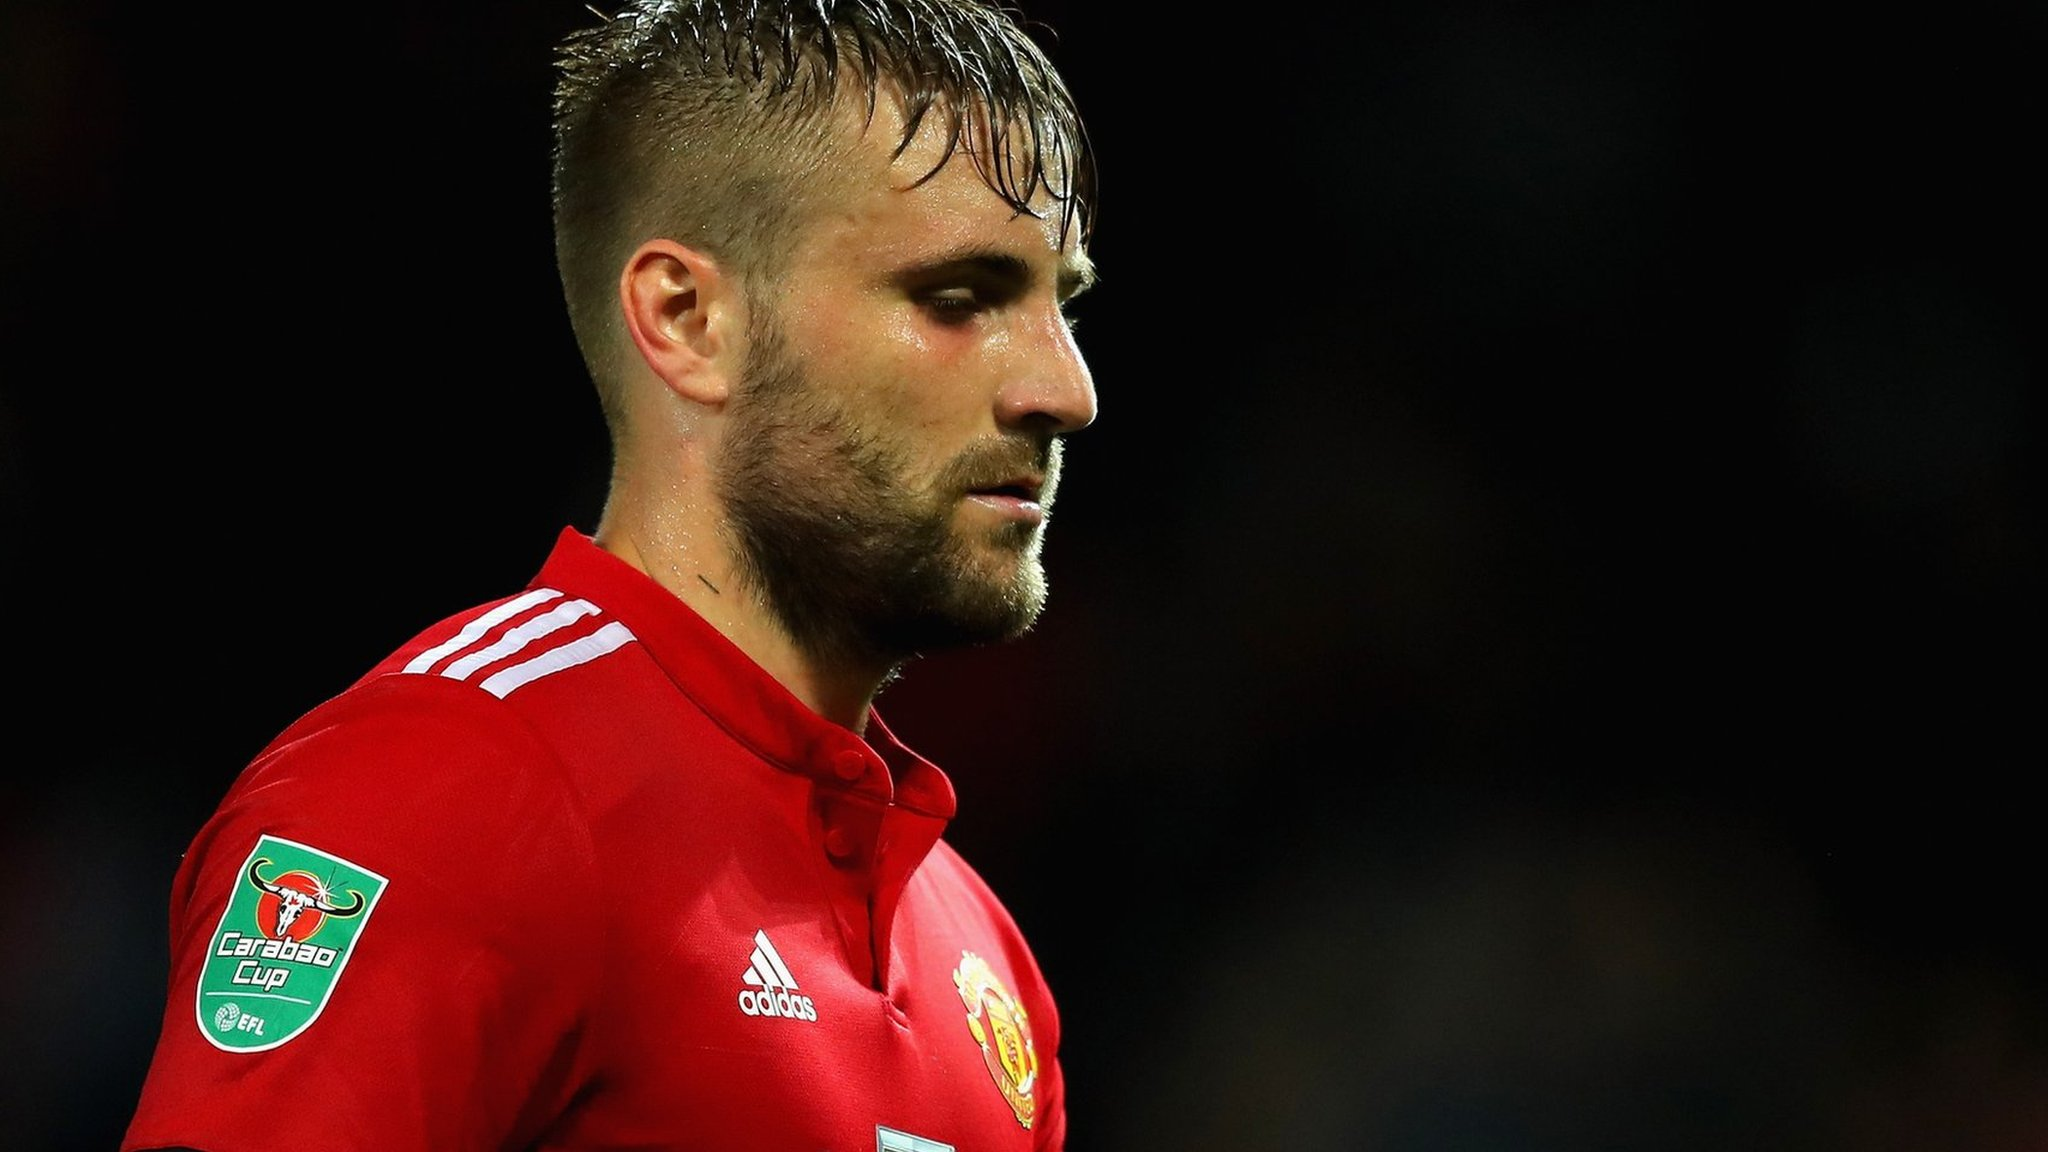 Shaw can be one of the best in the world - Man Utd team-mate Young